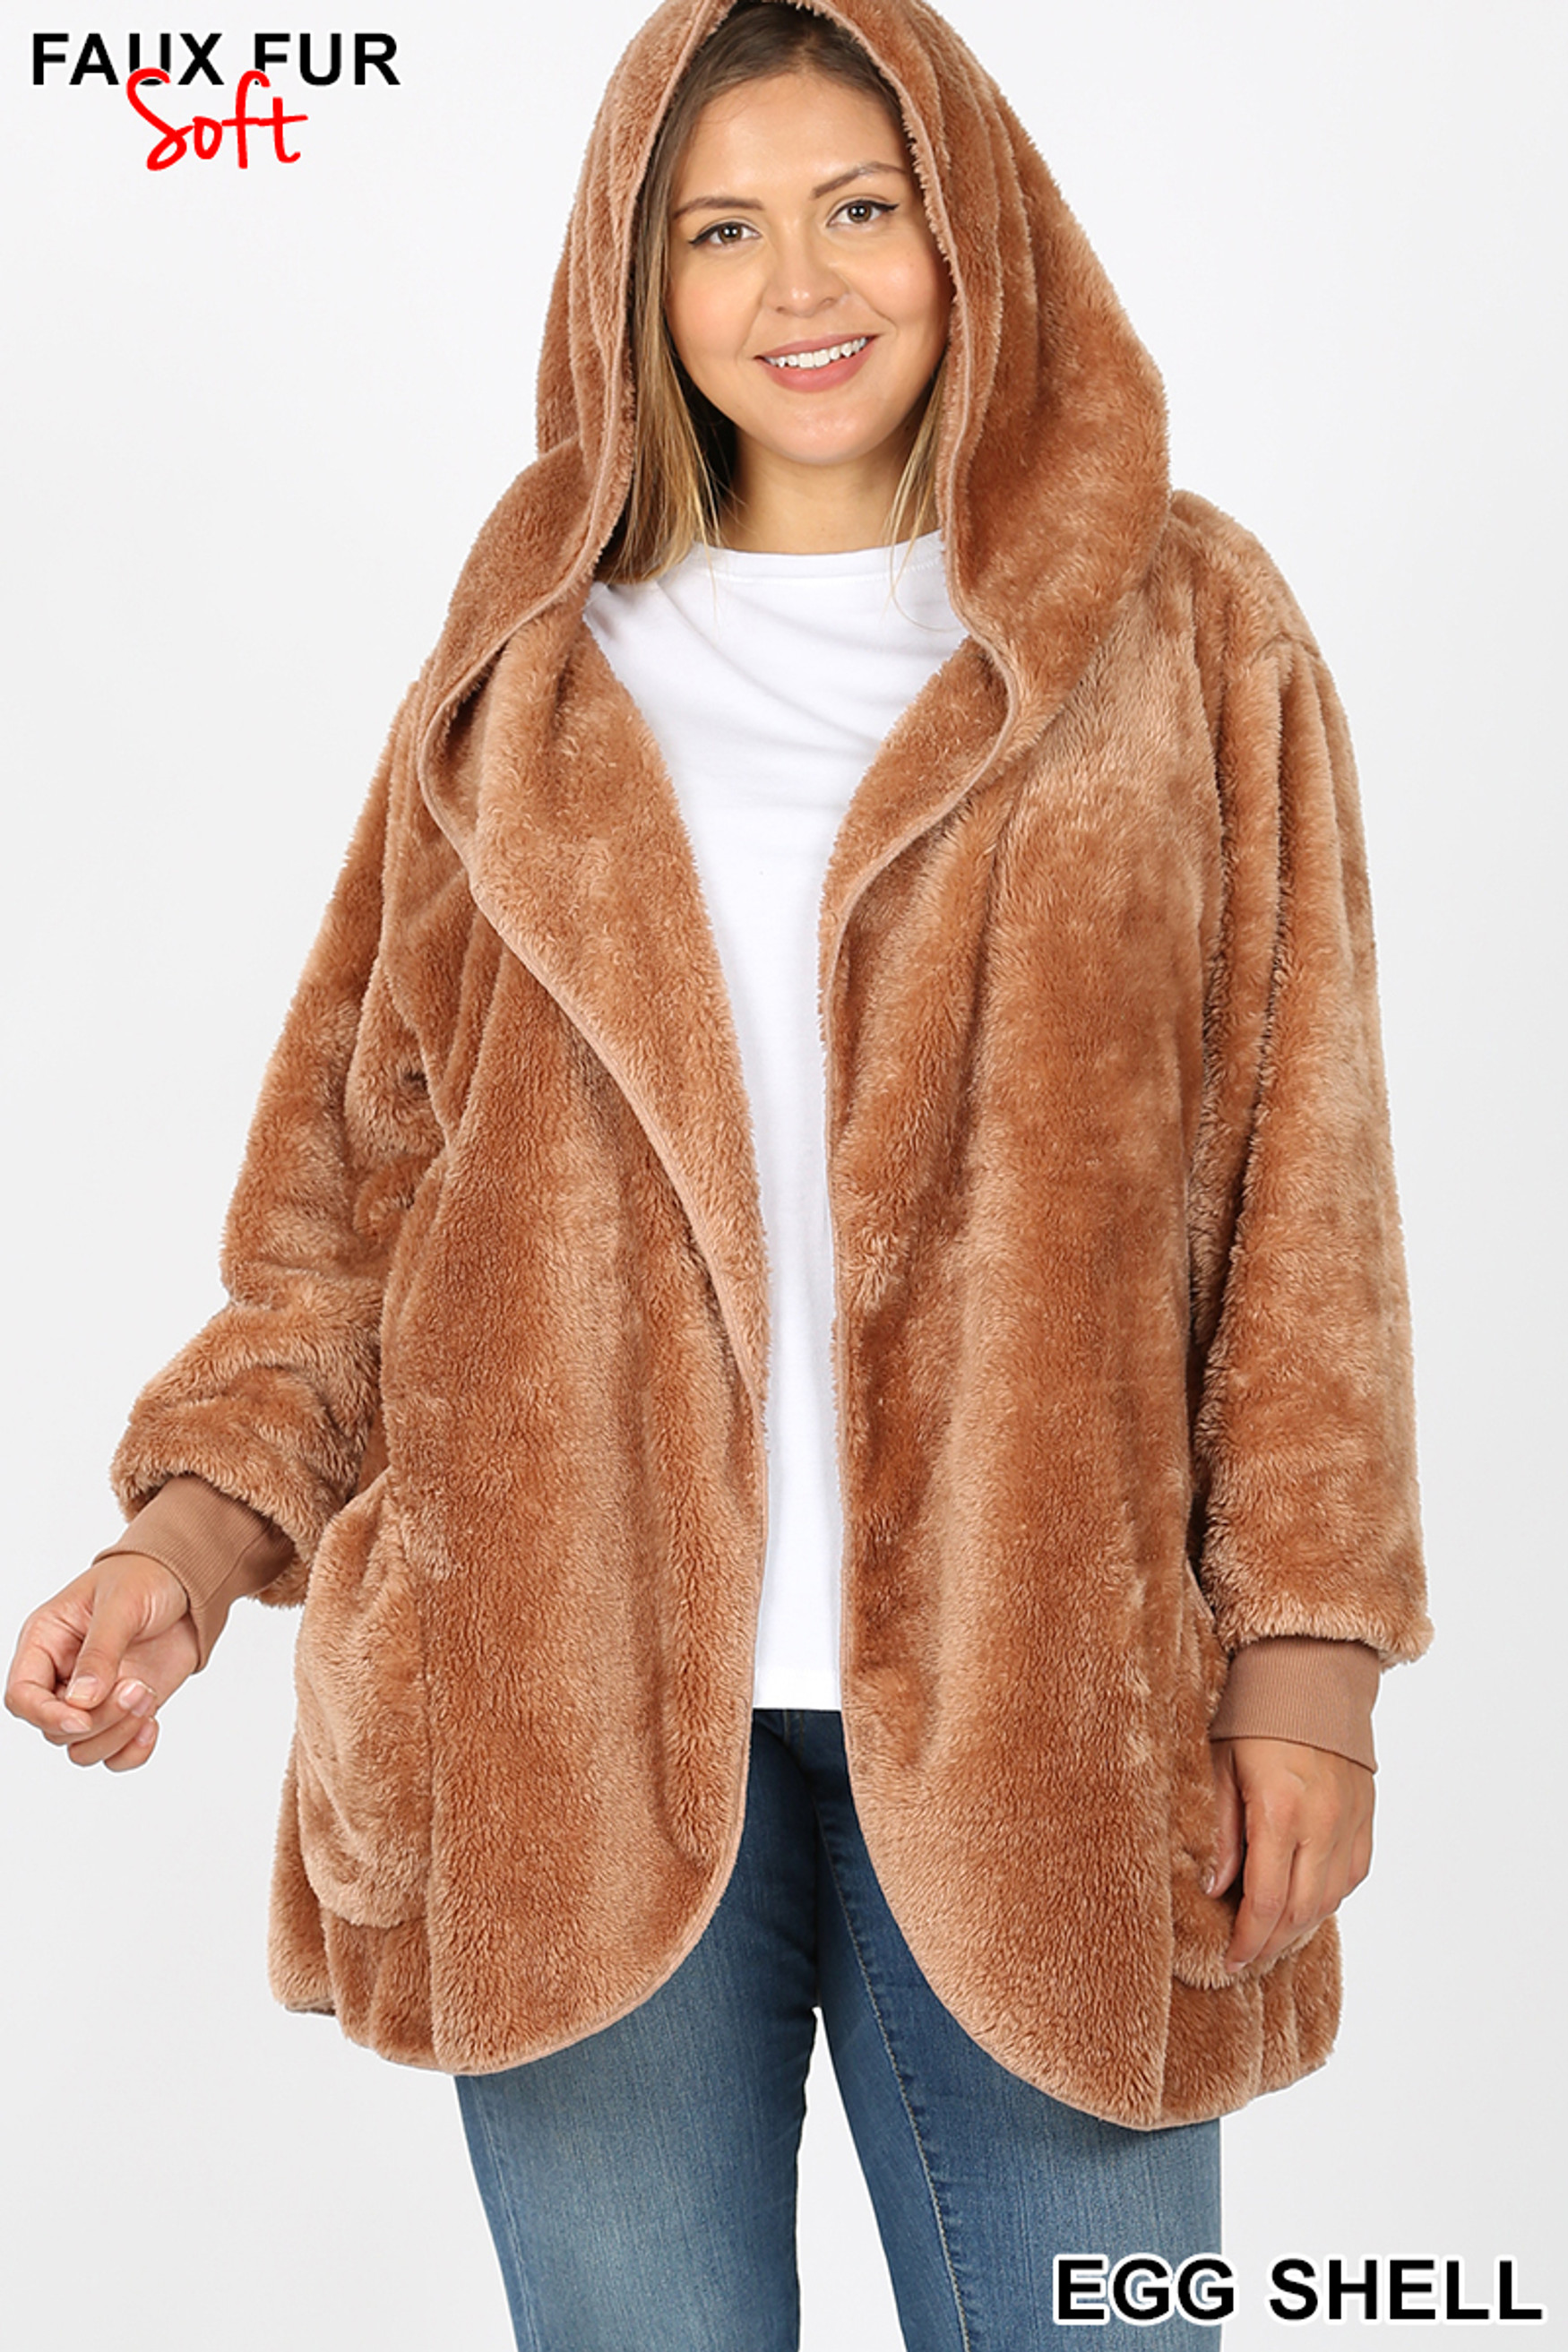 Front Image of Eggshell Faux Fur Hooded Cocoon Plus Size Jacket with Pockets